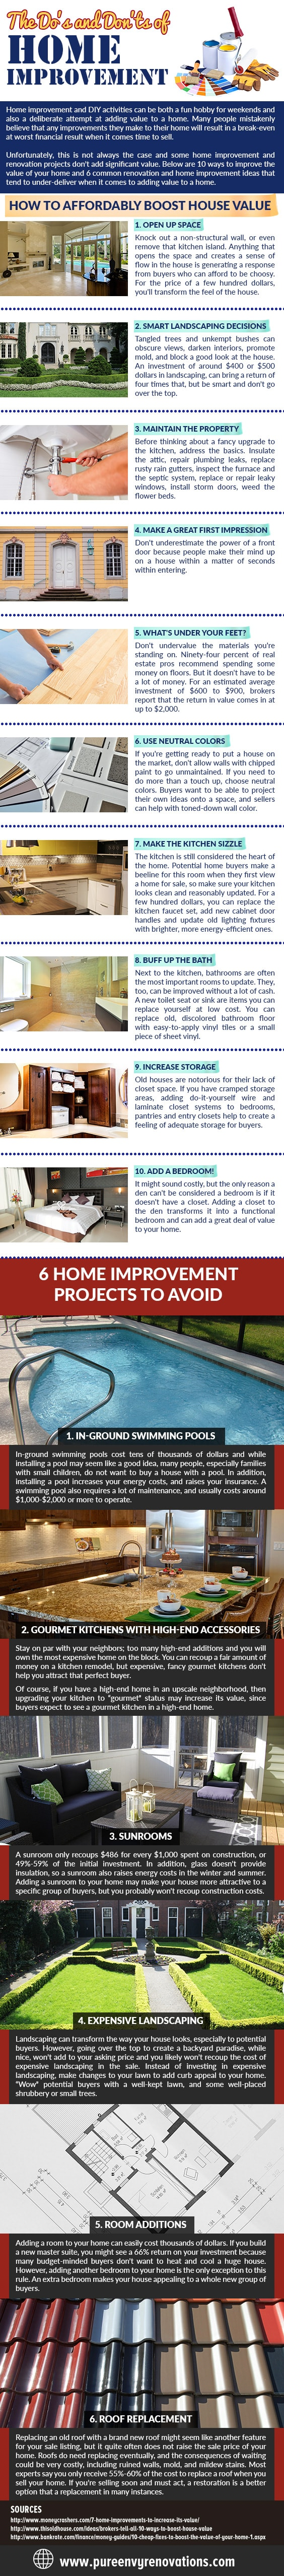 The Do's And Don'ts of Home Improvement